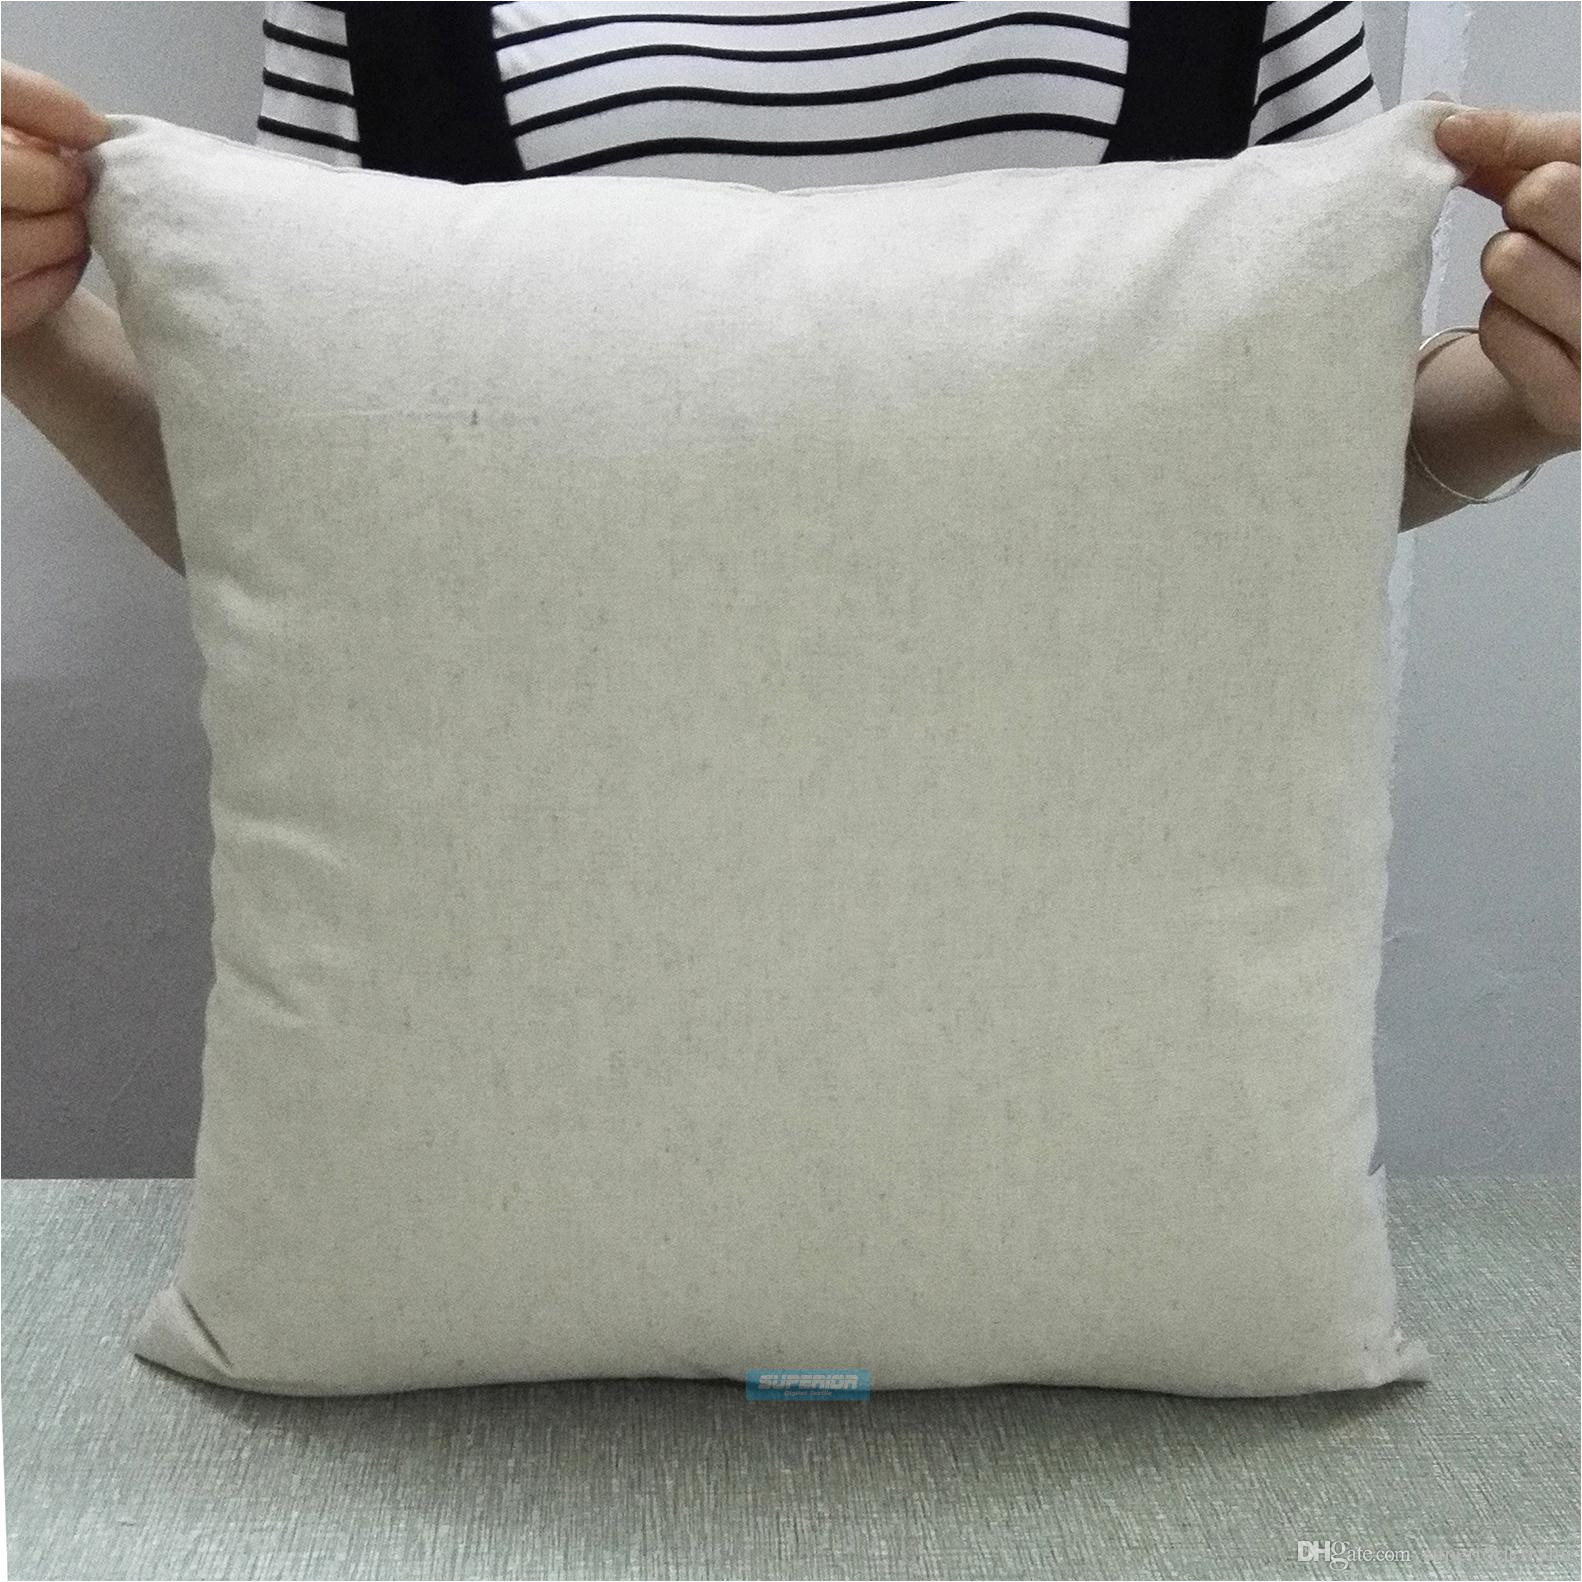 Blank Throw Pillow Covers wholesale All Sizes Plain Natural Gray Linen Cotton Blended Pillow Cover